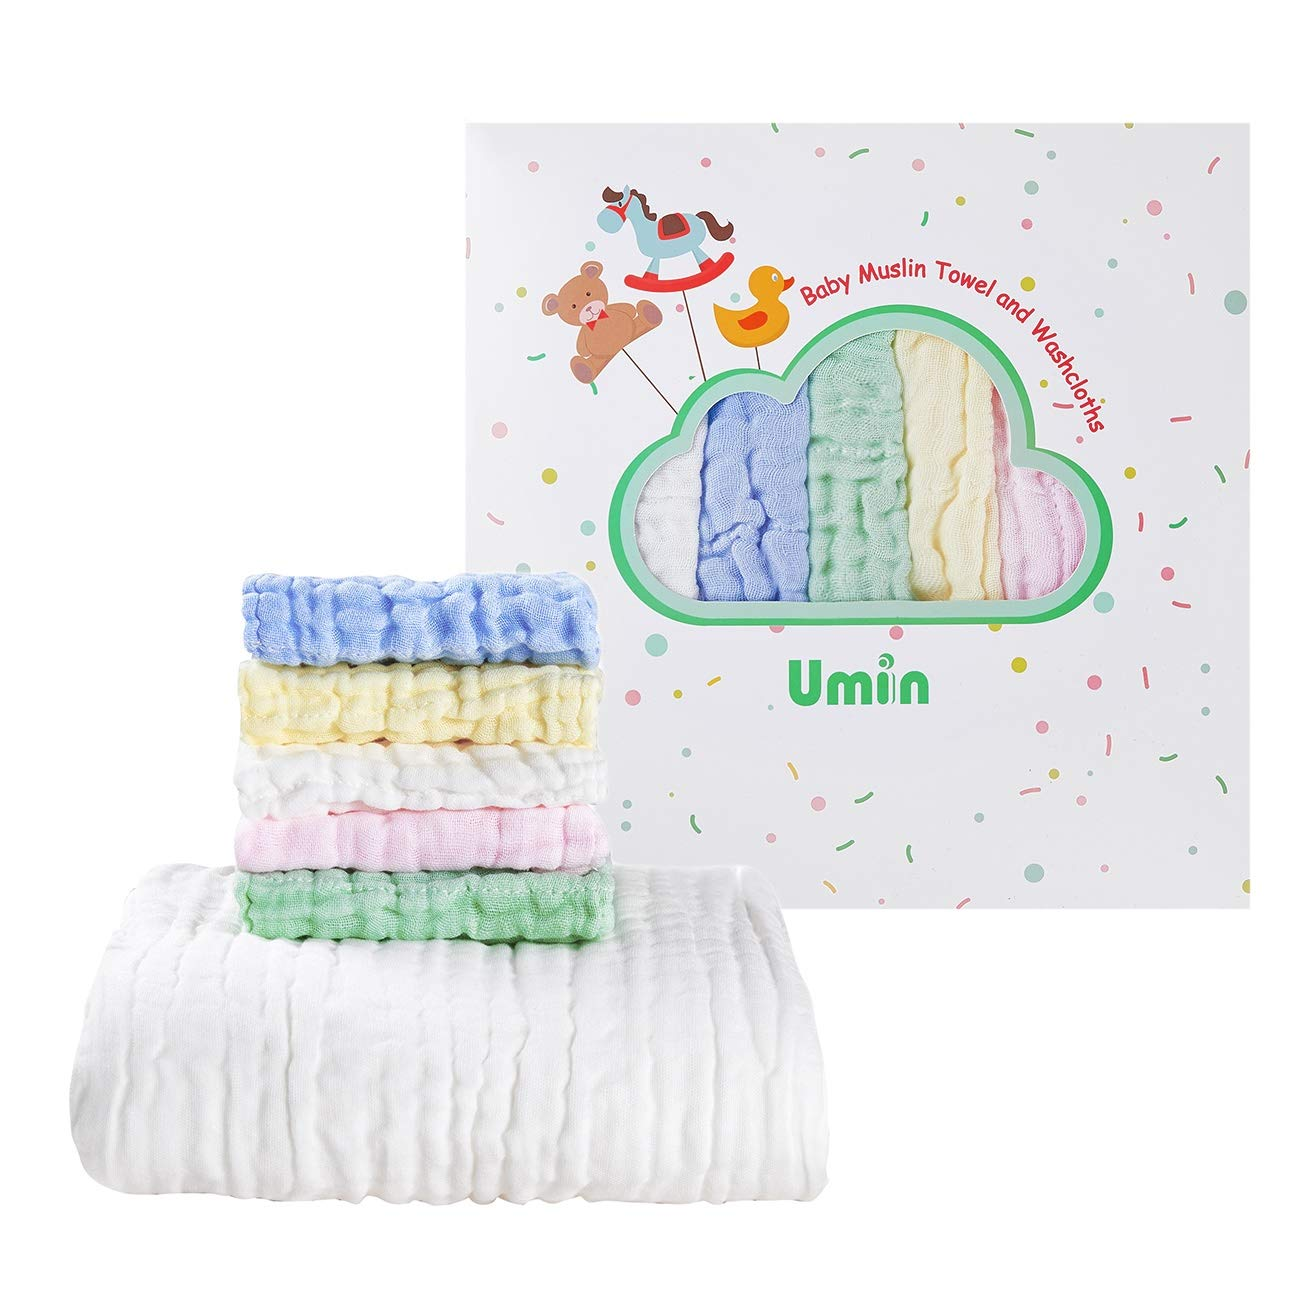 Umiin Baby Towel and Washcloths Set - Premium Baby Shower Gift for Boys and Girls - Baby Registry Must Haves - 1 Muslin Baby Bath Towel and 5 Baby Muslin Washcloths